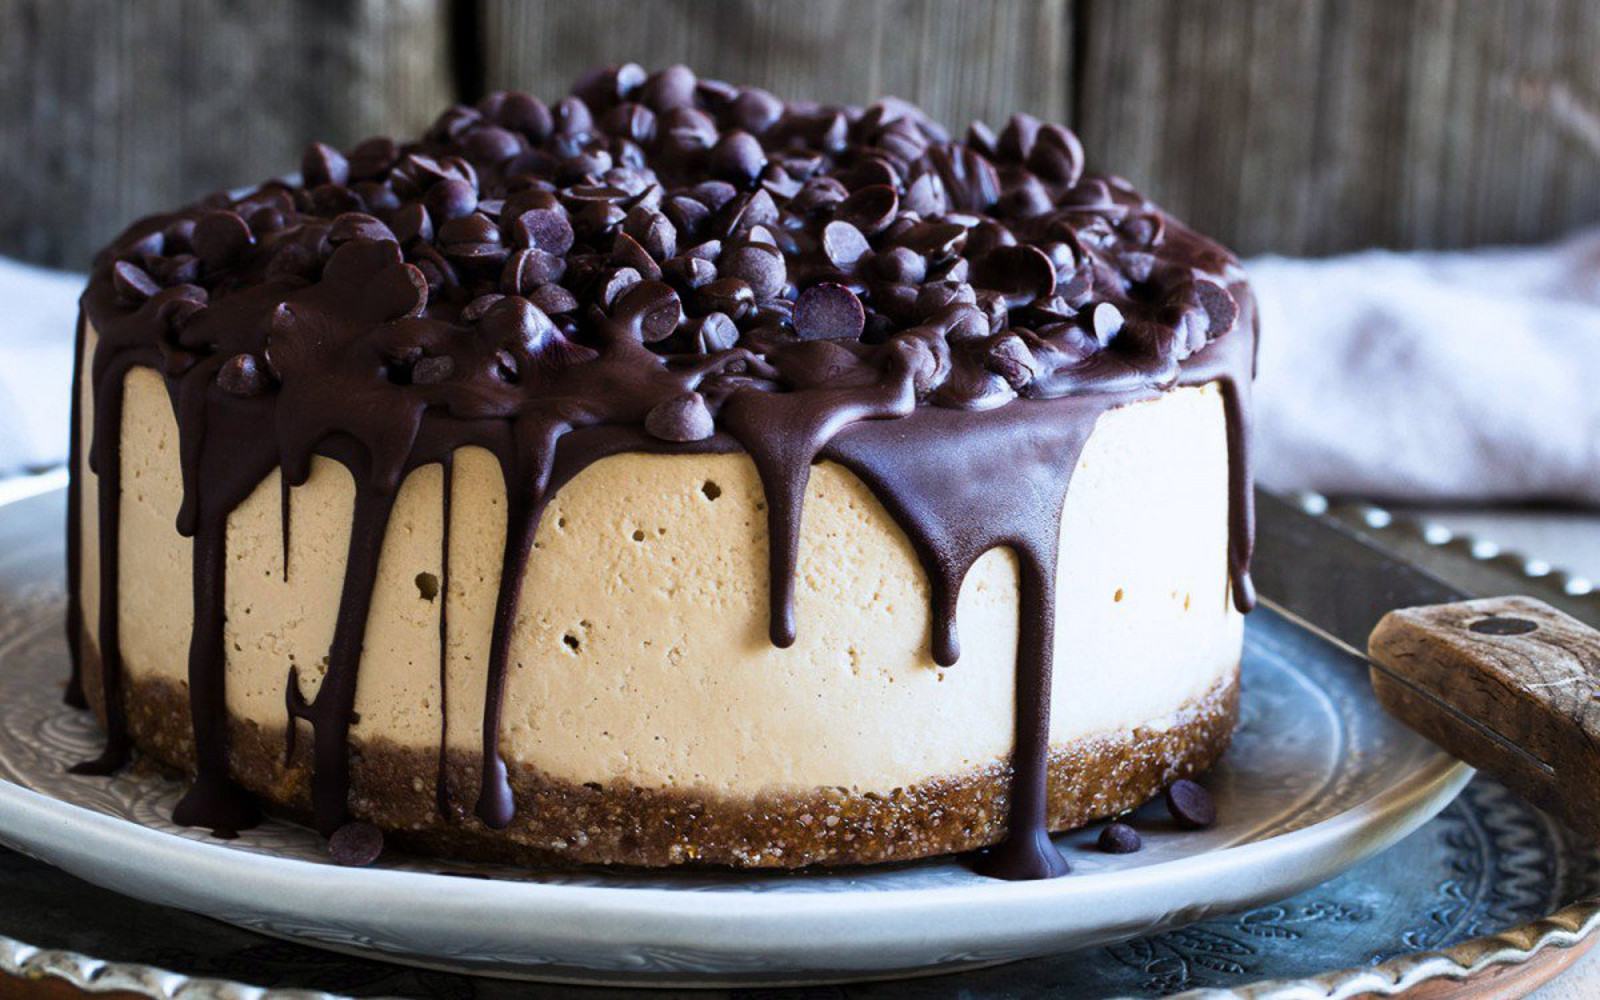 Vegan mocha cheesecake covered in chocolate chips